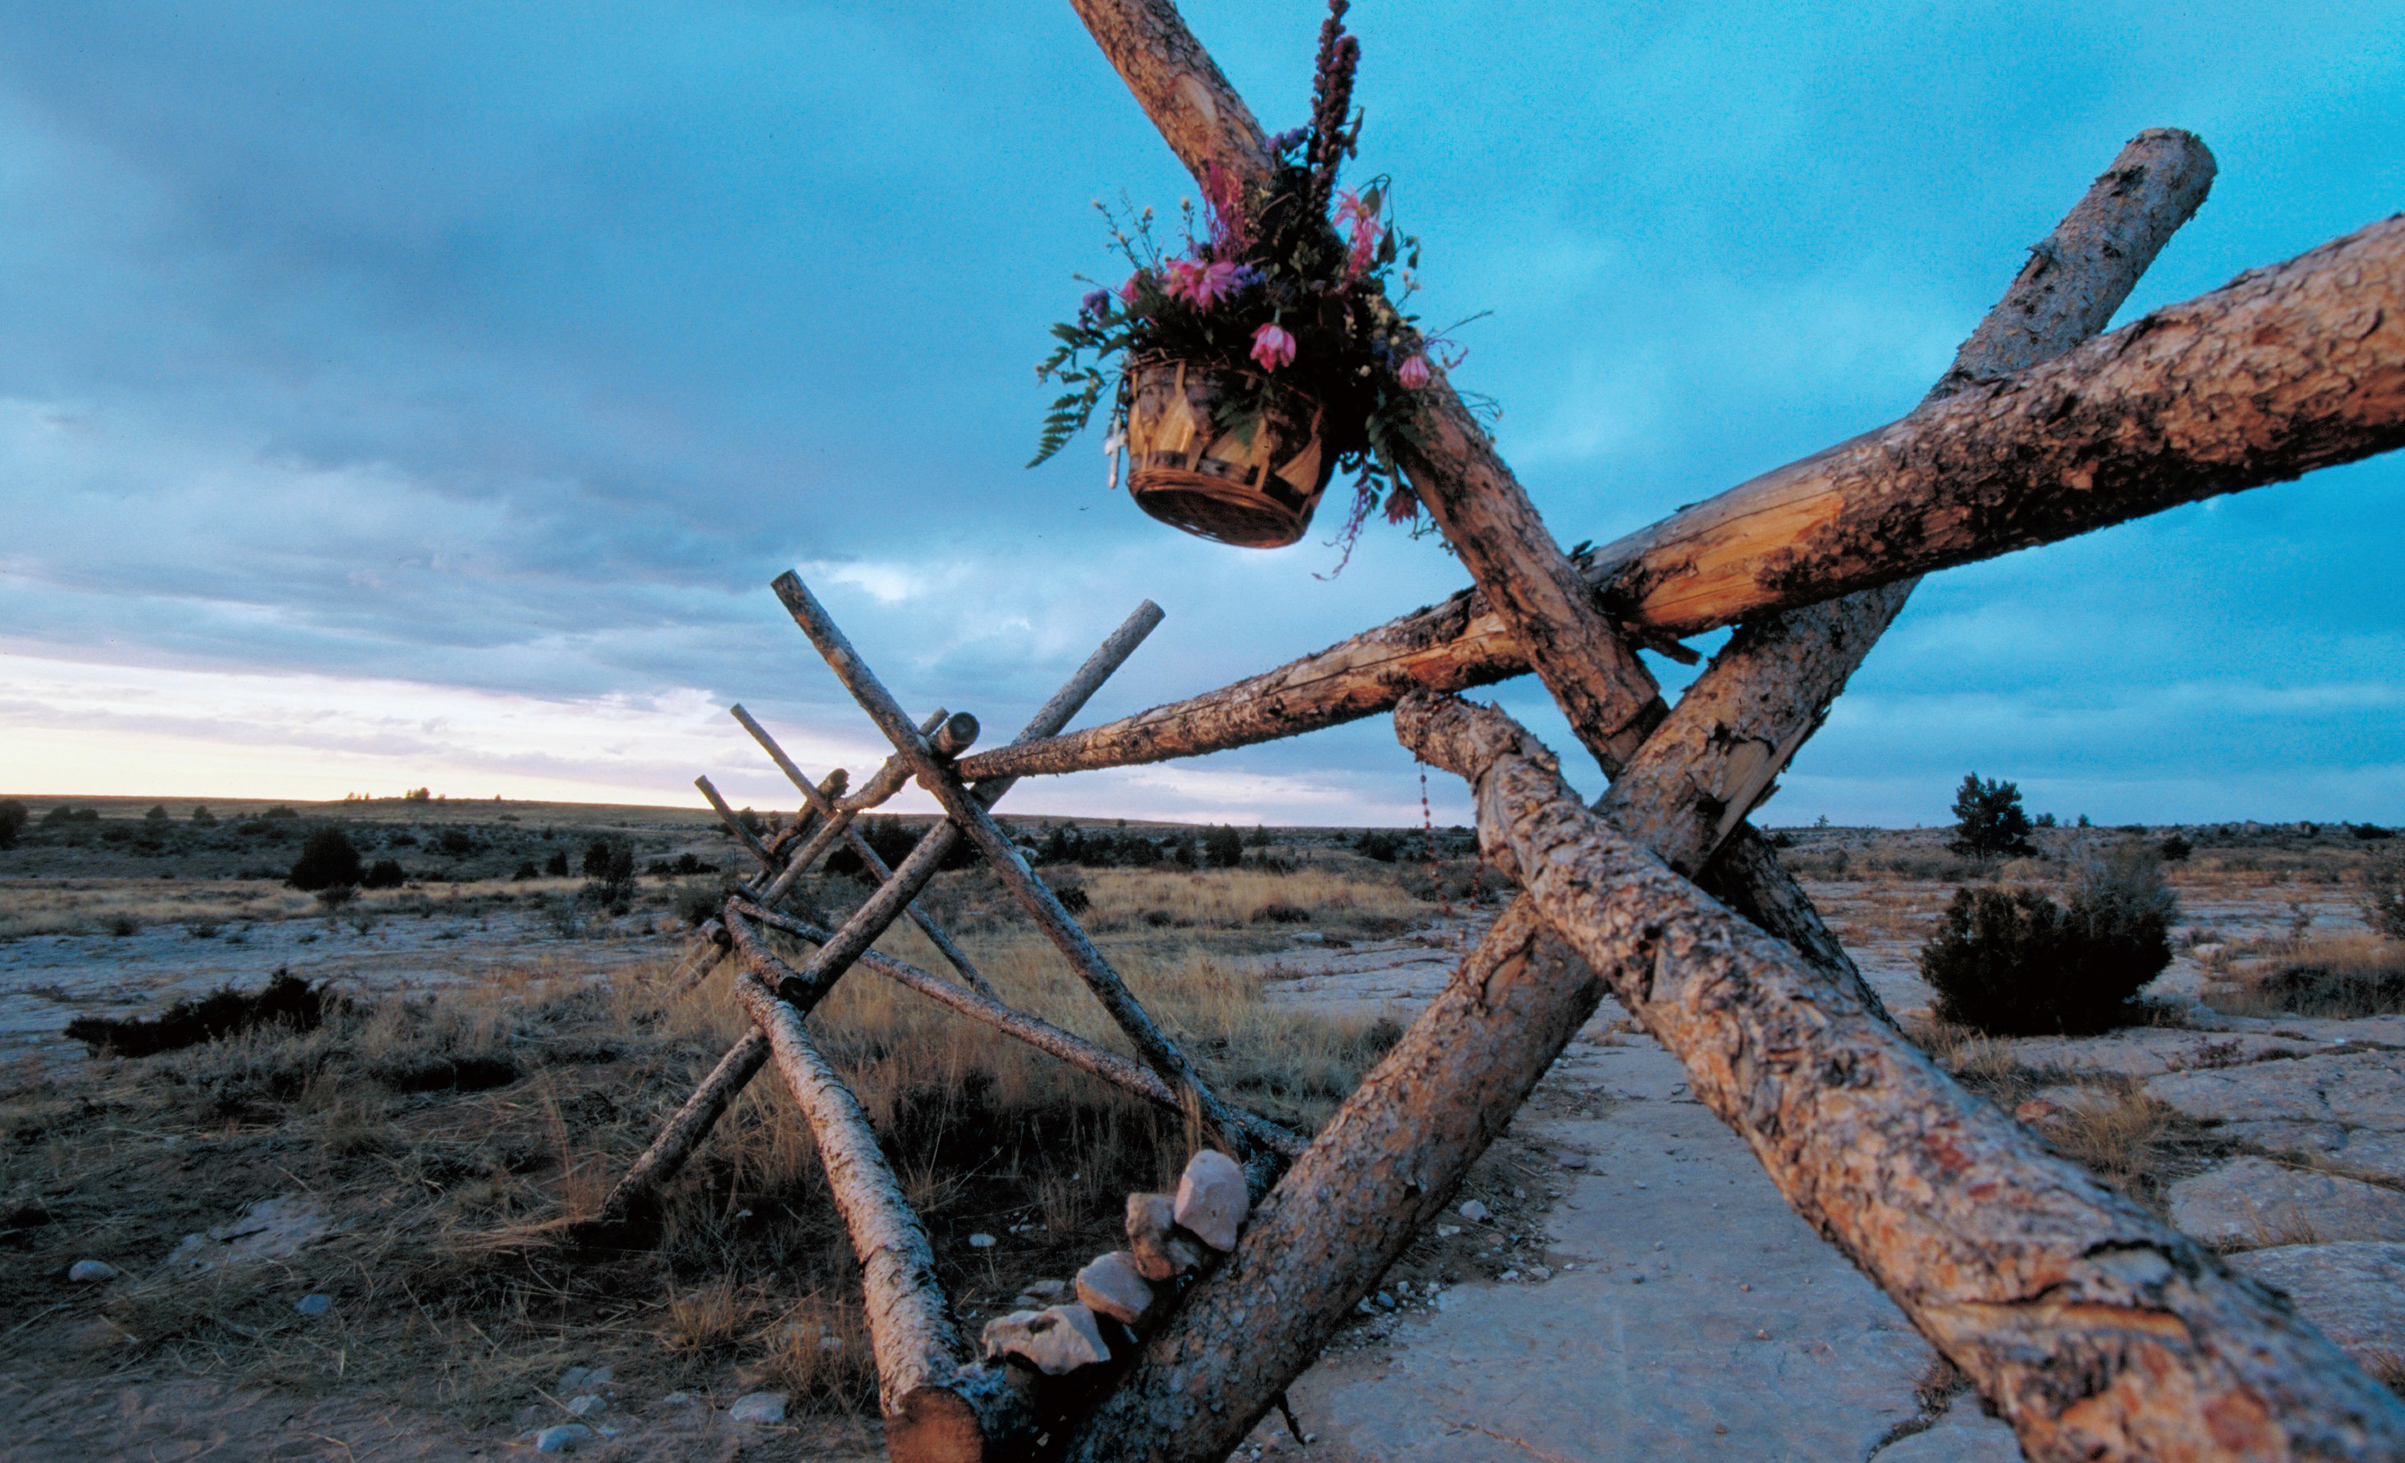 The fence near Laramie, Wyo. where Matthew Shepard was left tied and beaten